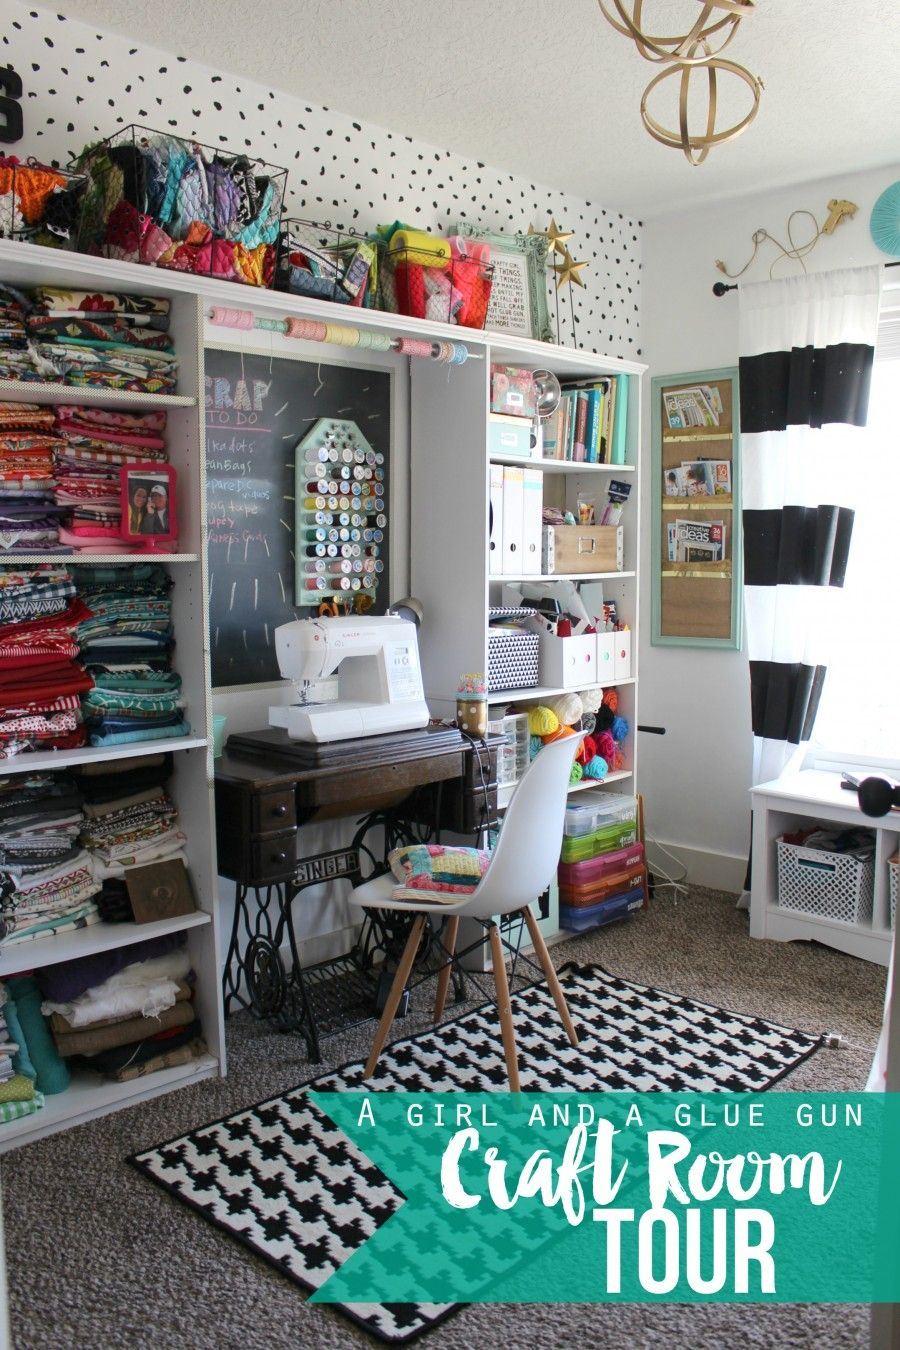 Check Out This Super Fun Craft Room Tour Lots Of Great Organization Ideas